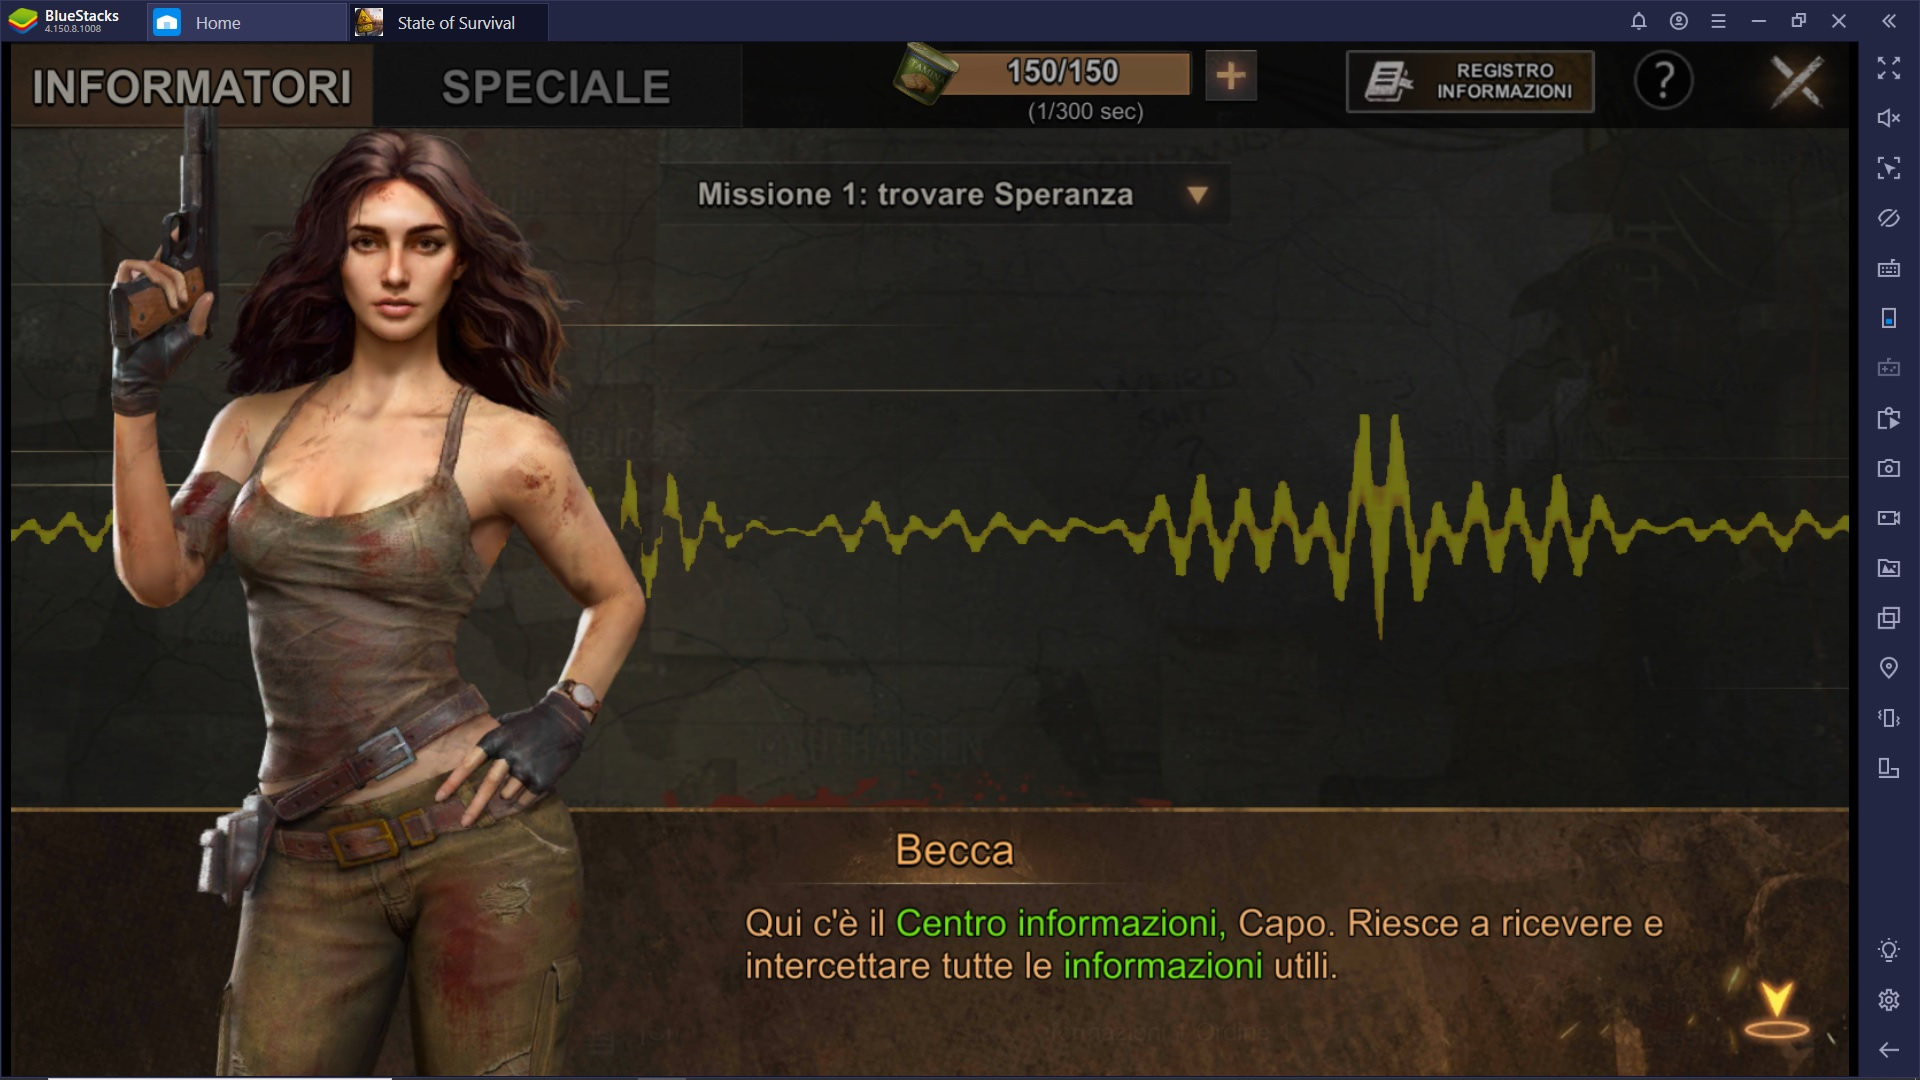 Gioca a State of Survival su PC e sopravvivi con Bluestacks!